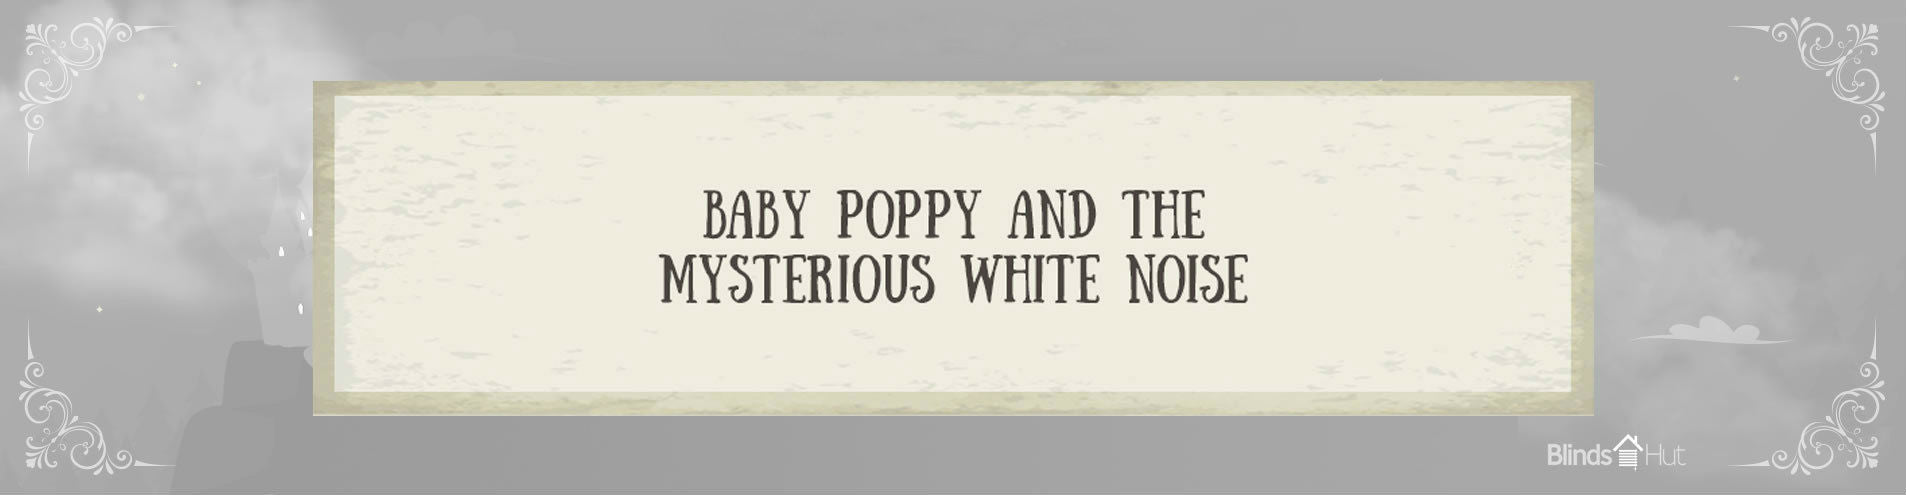 Baby Poppy and the mysterious white noise